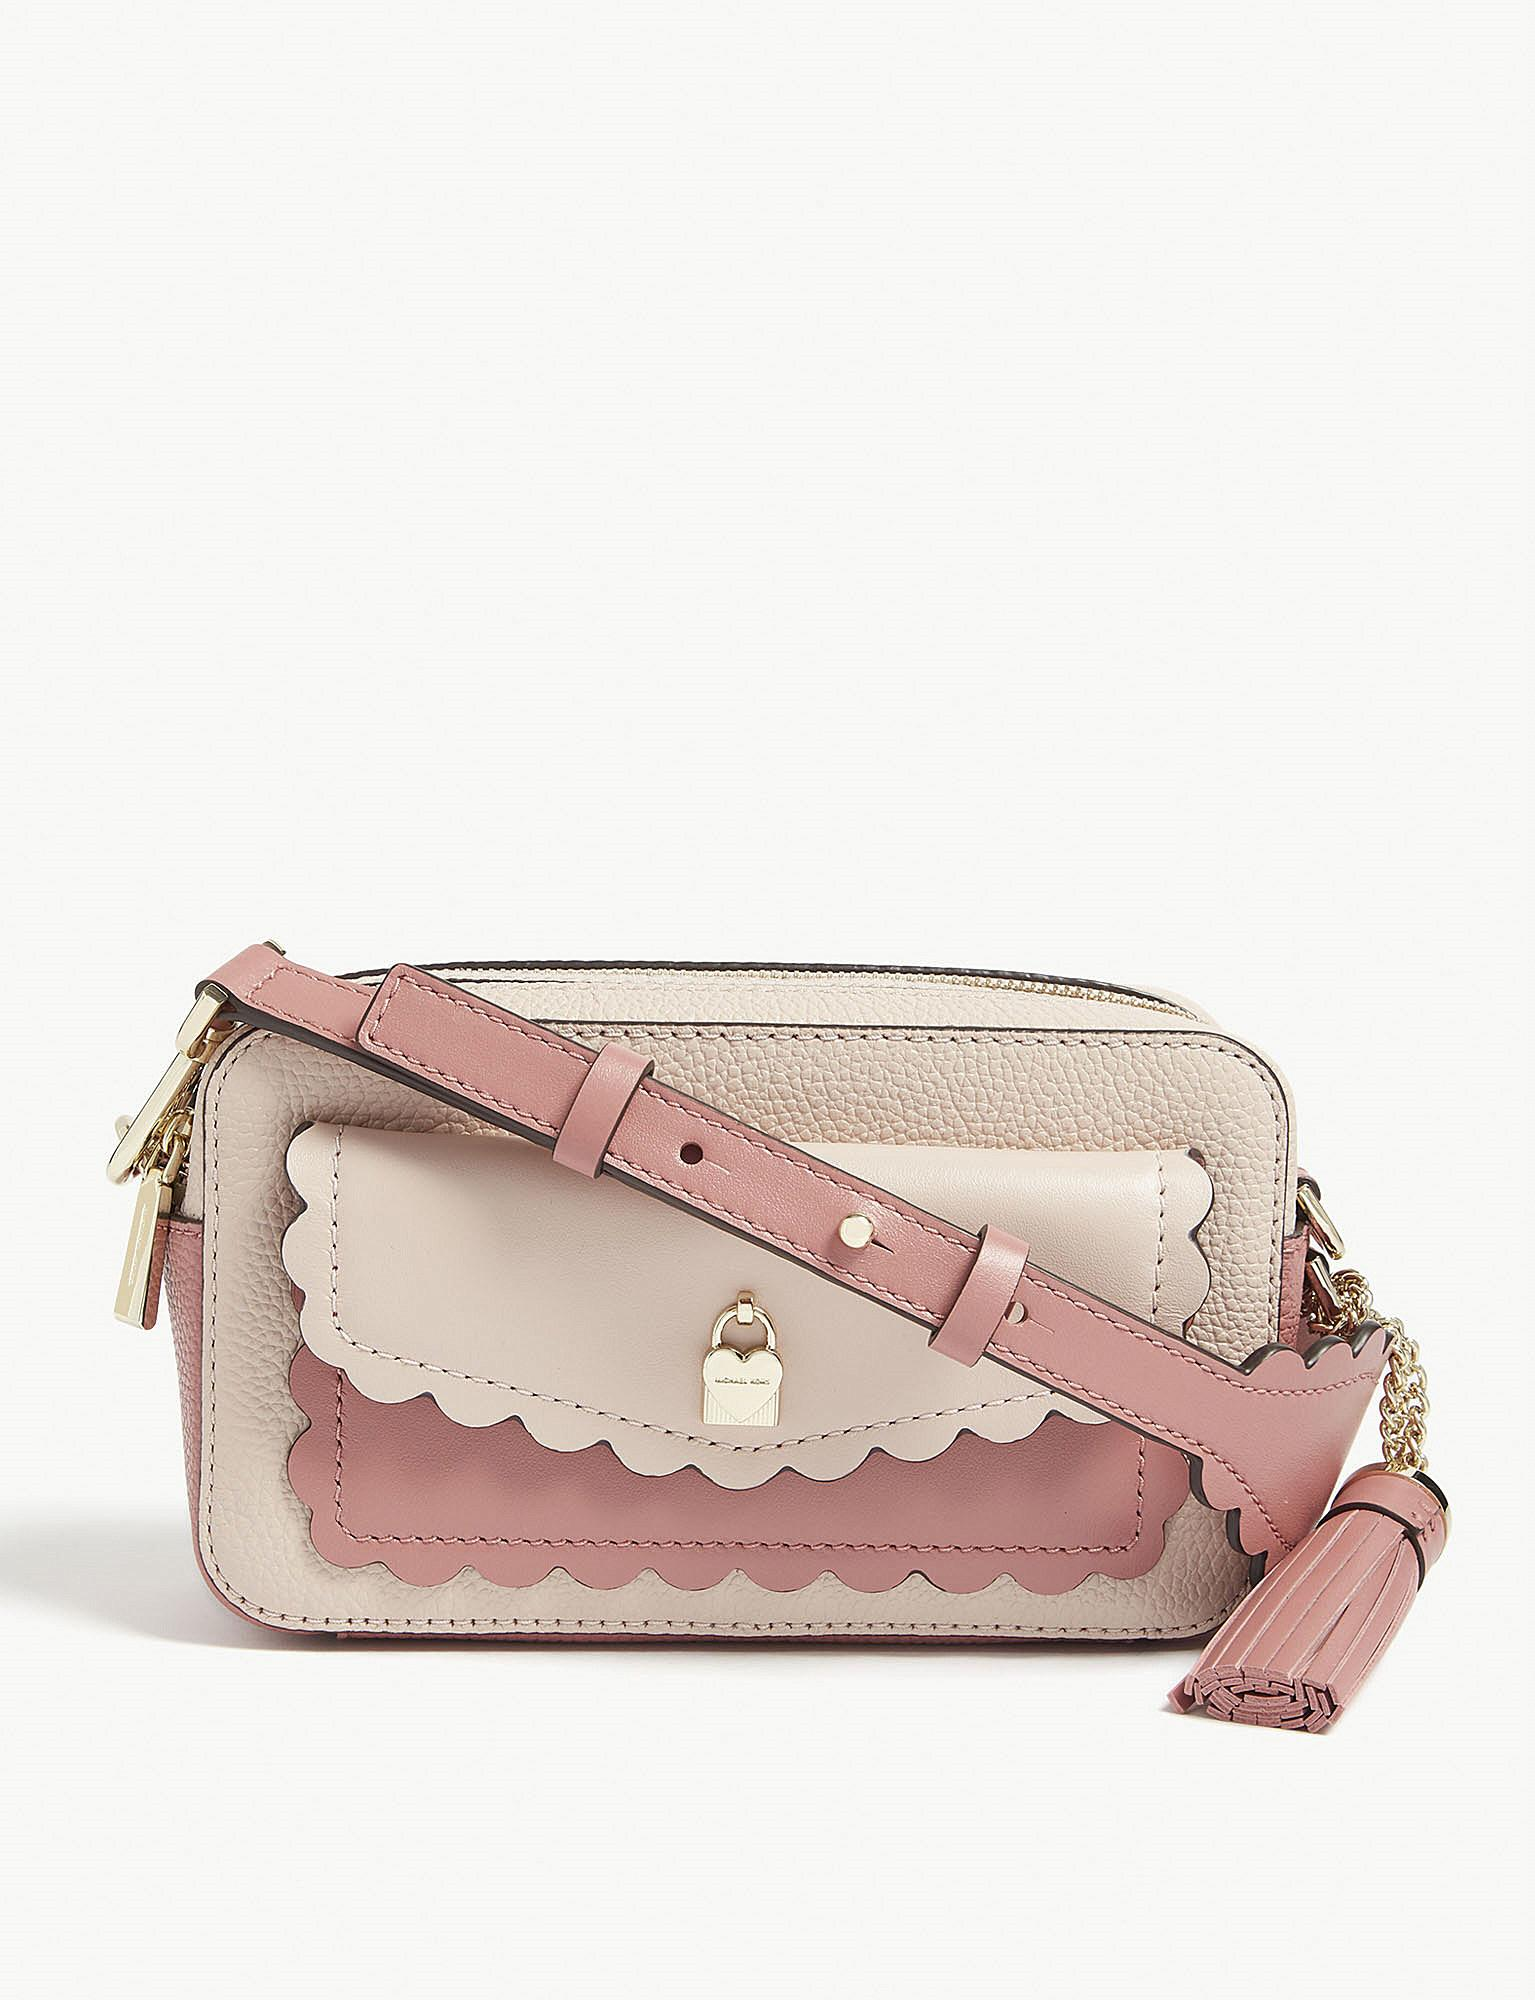 ea0bff58f4 Lyst - Michael Michael Kors Scalloped Leather Cross-body Bag in Pink